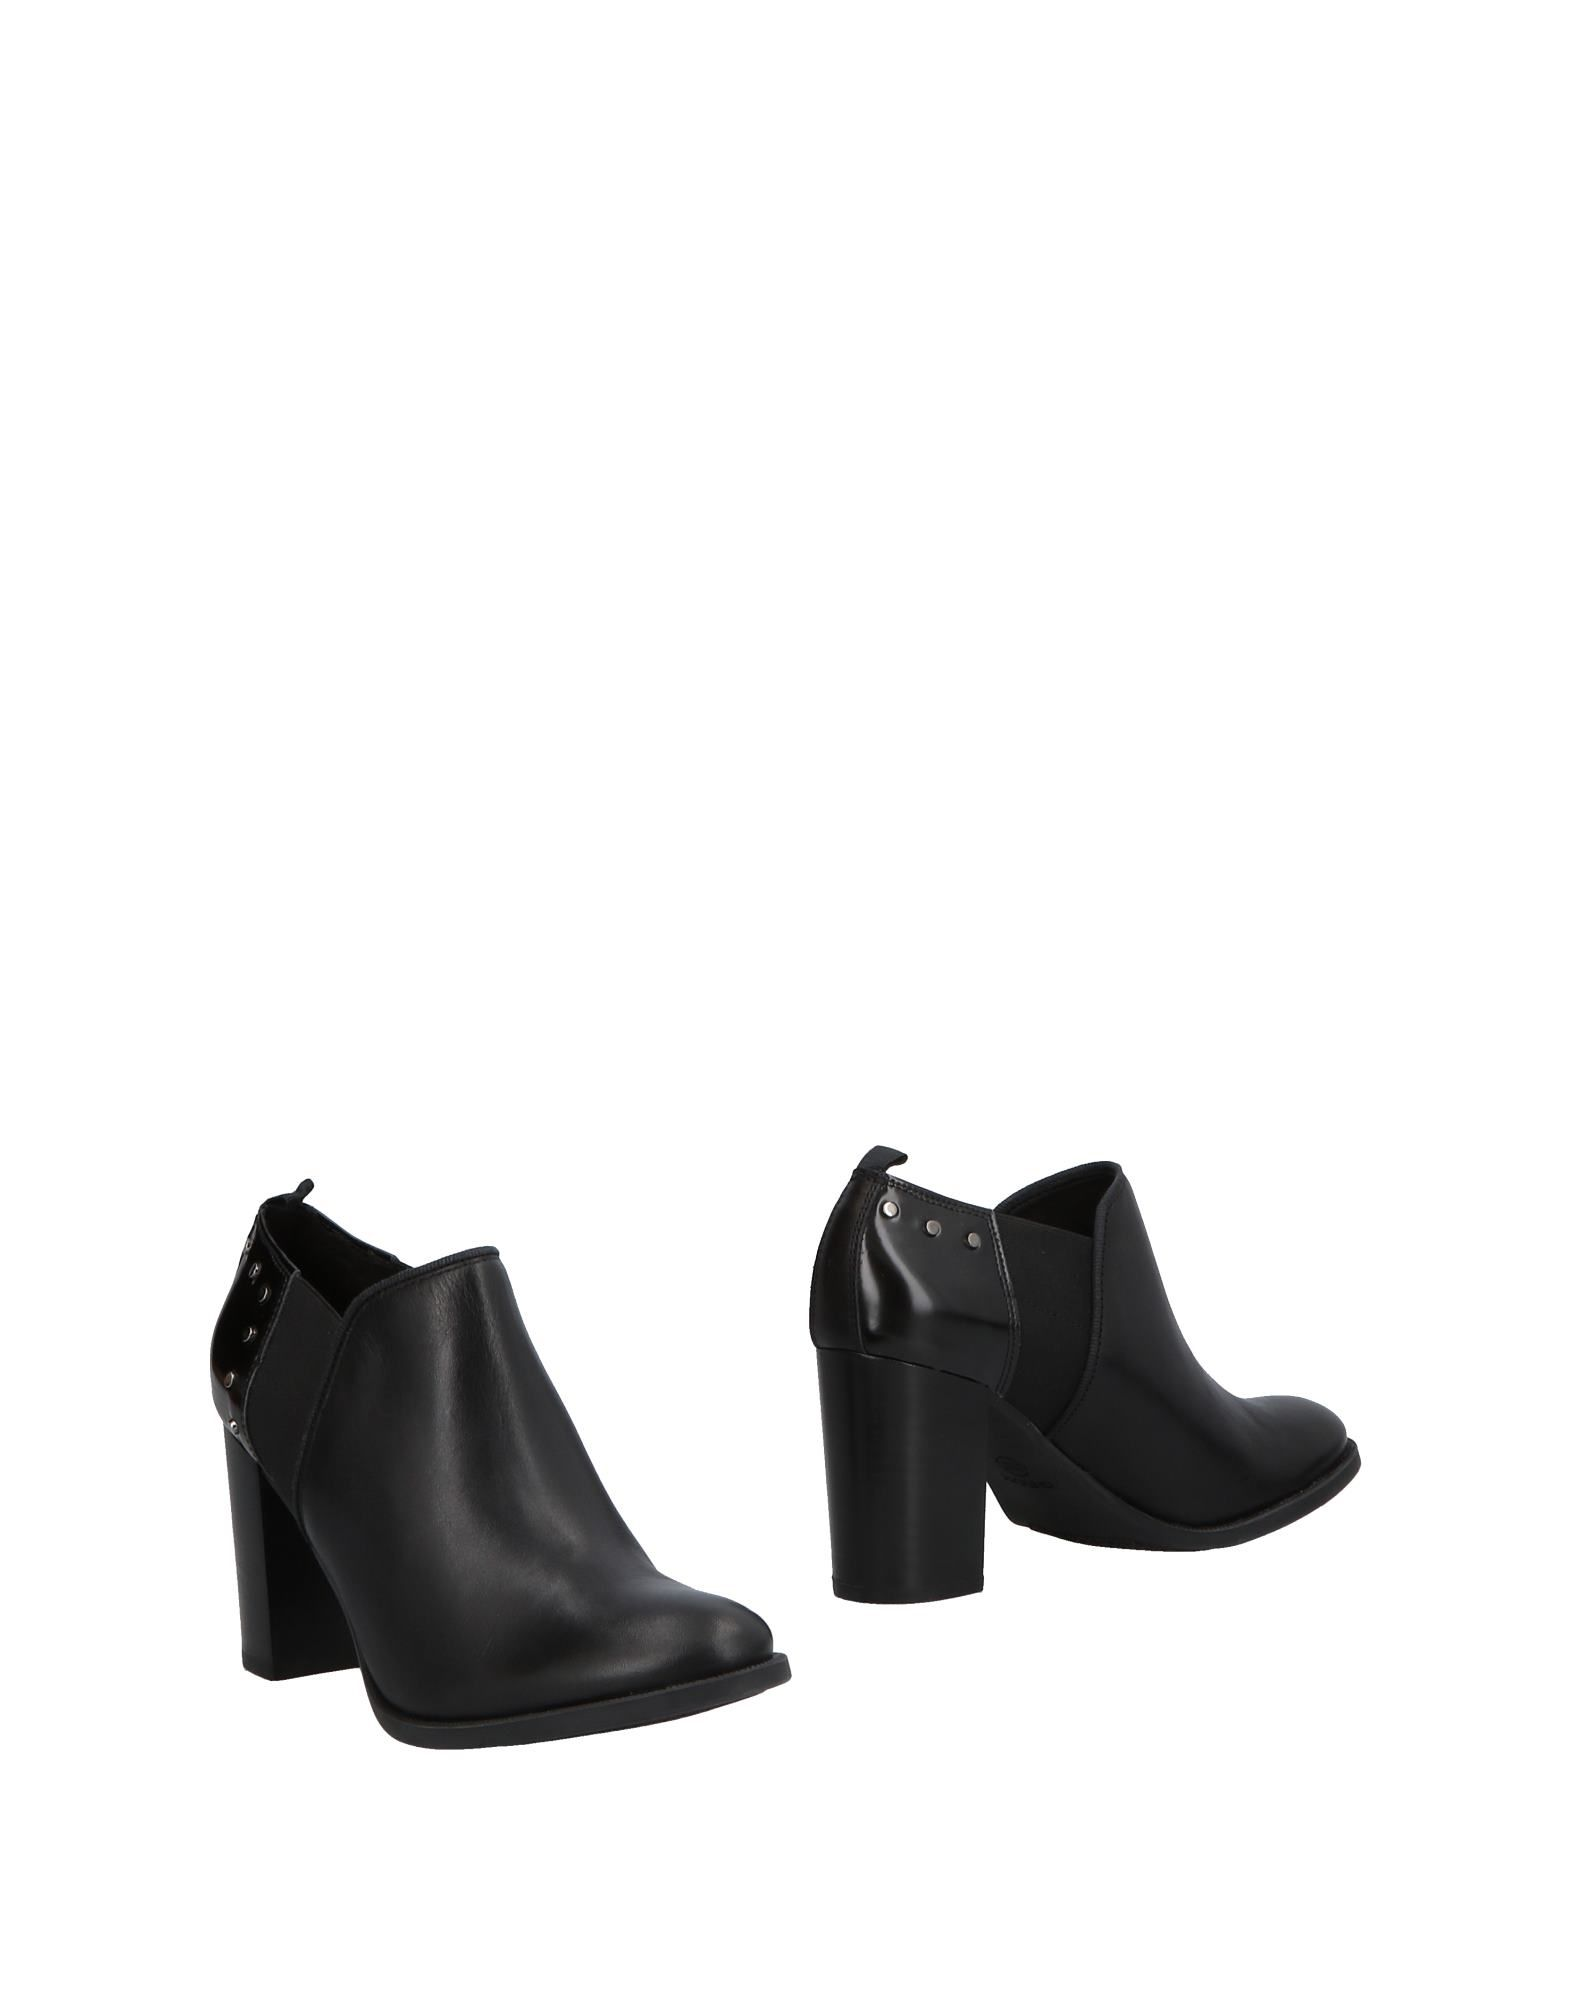 Geox Ankle Boot - Women Geox Ankle Boots - online on  Australia - Boots 11499091DJ 444022